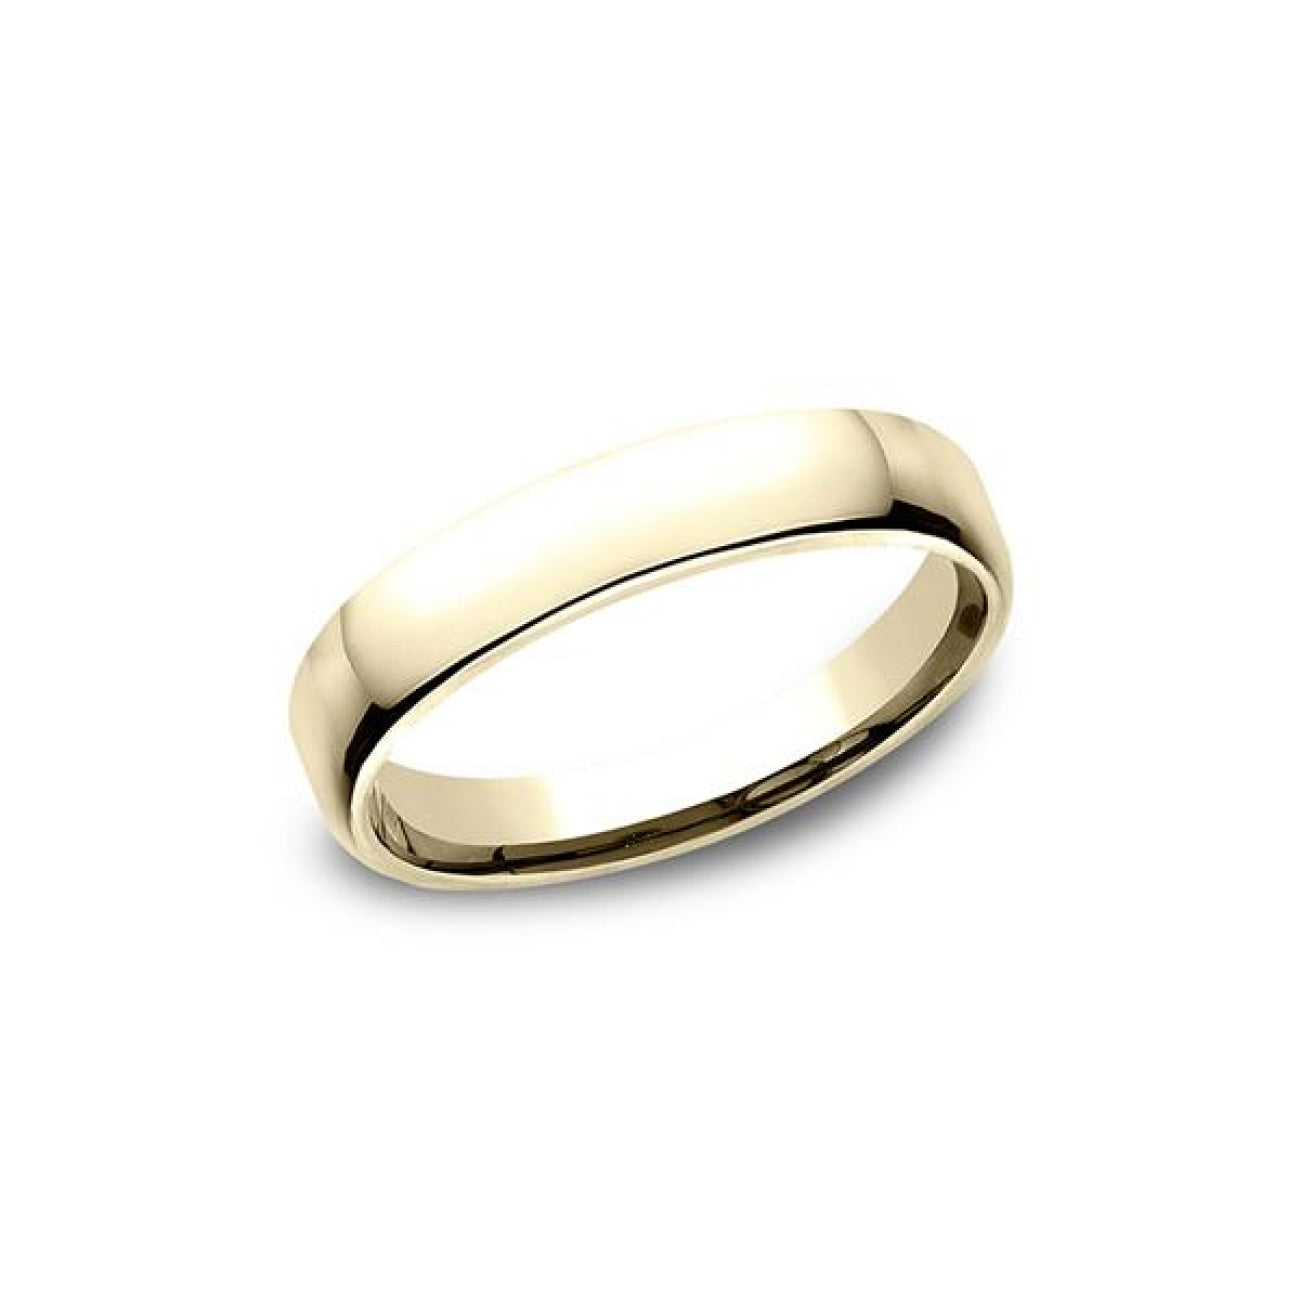 Benchmark Engagement - European Comfort-Fit Wedding Ring | Manfredi Jewels